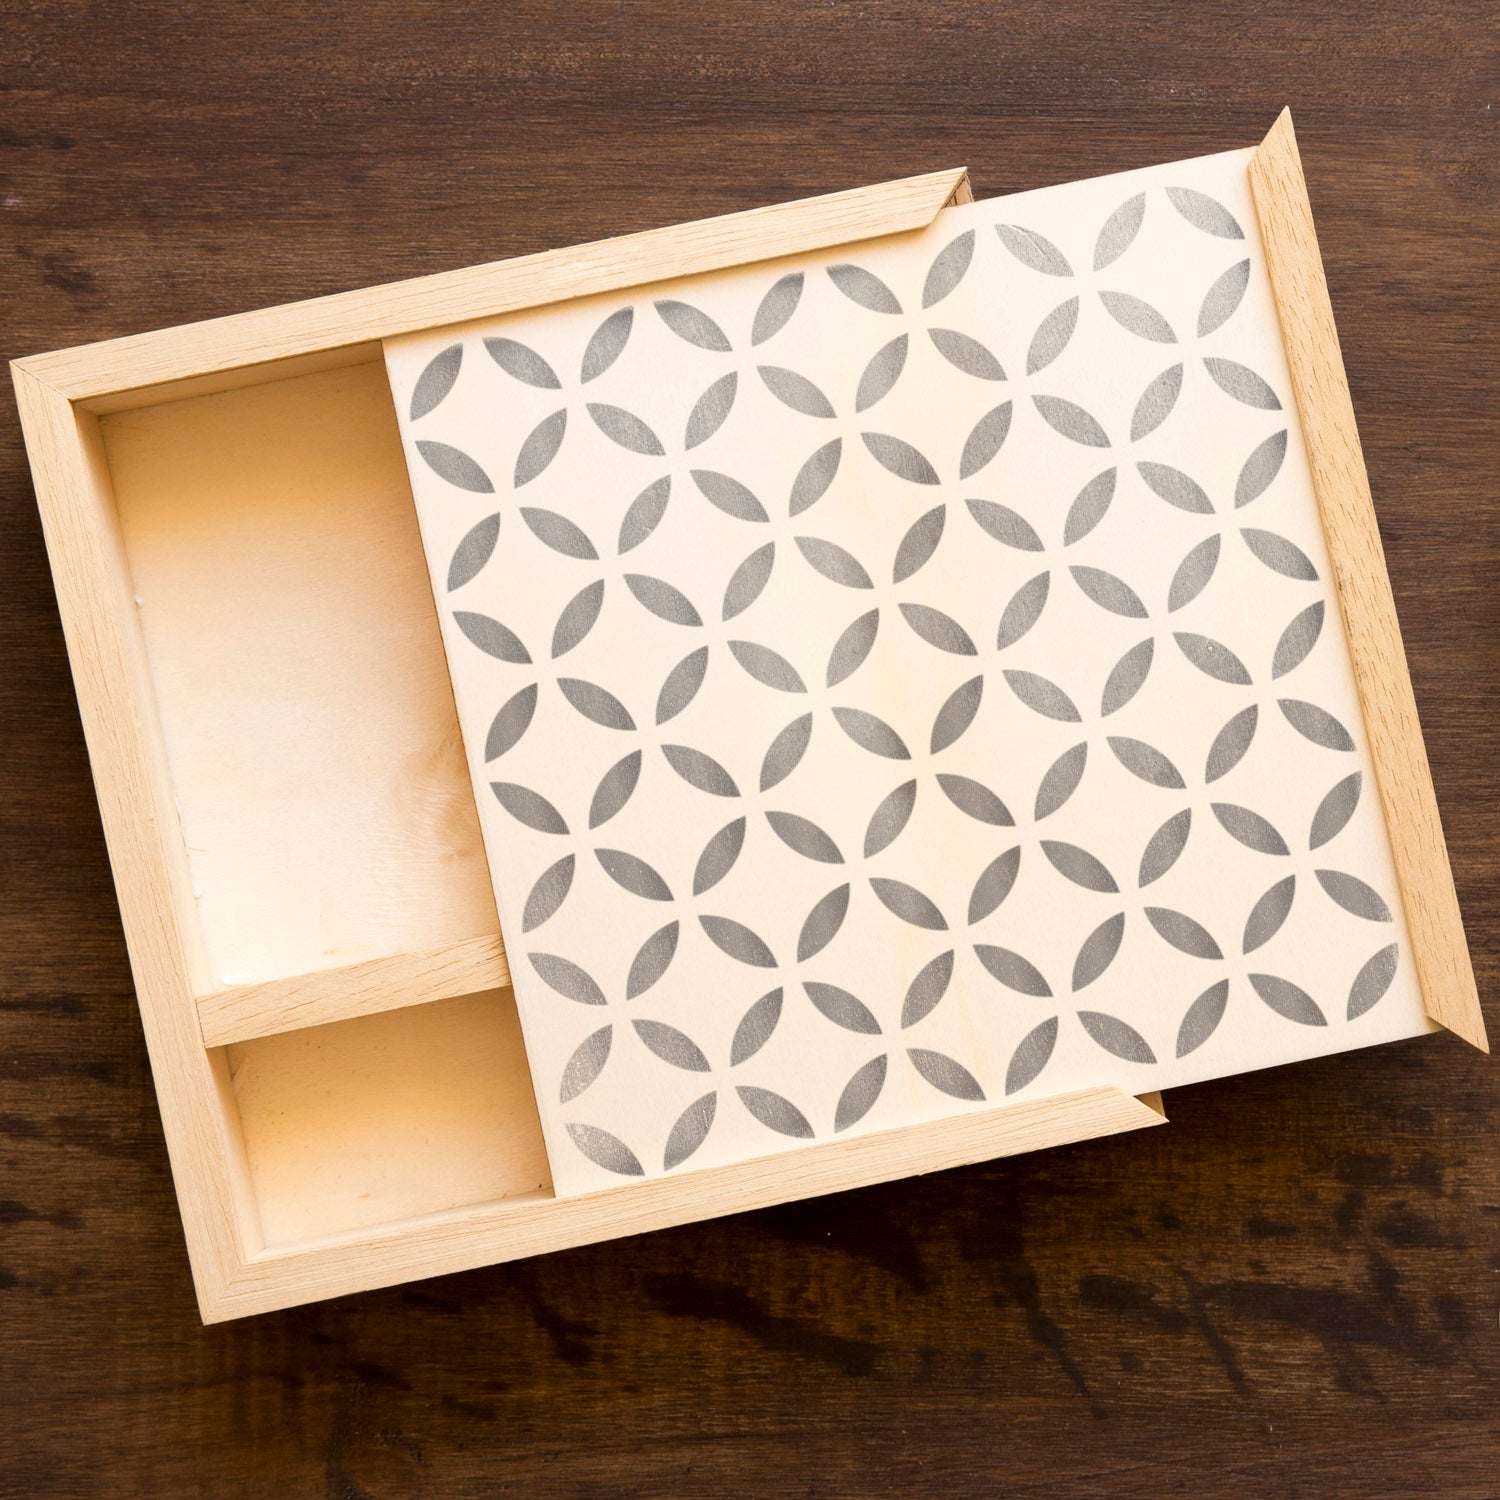 CraftStar Moorish Lattice Pattern Stencil on wooden box